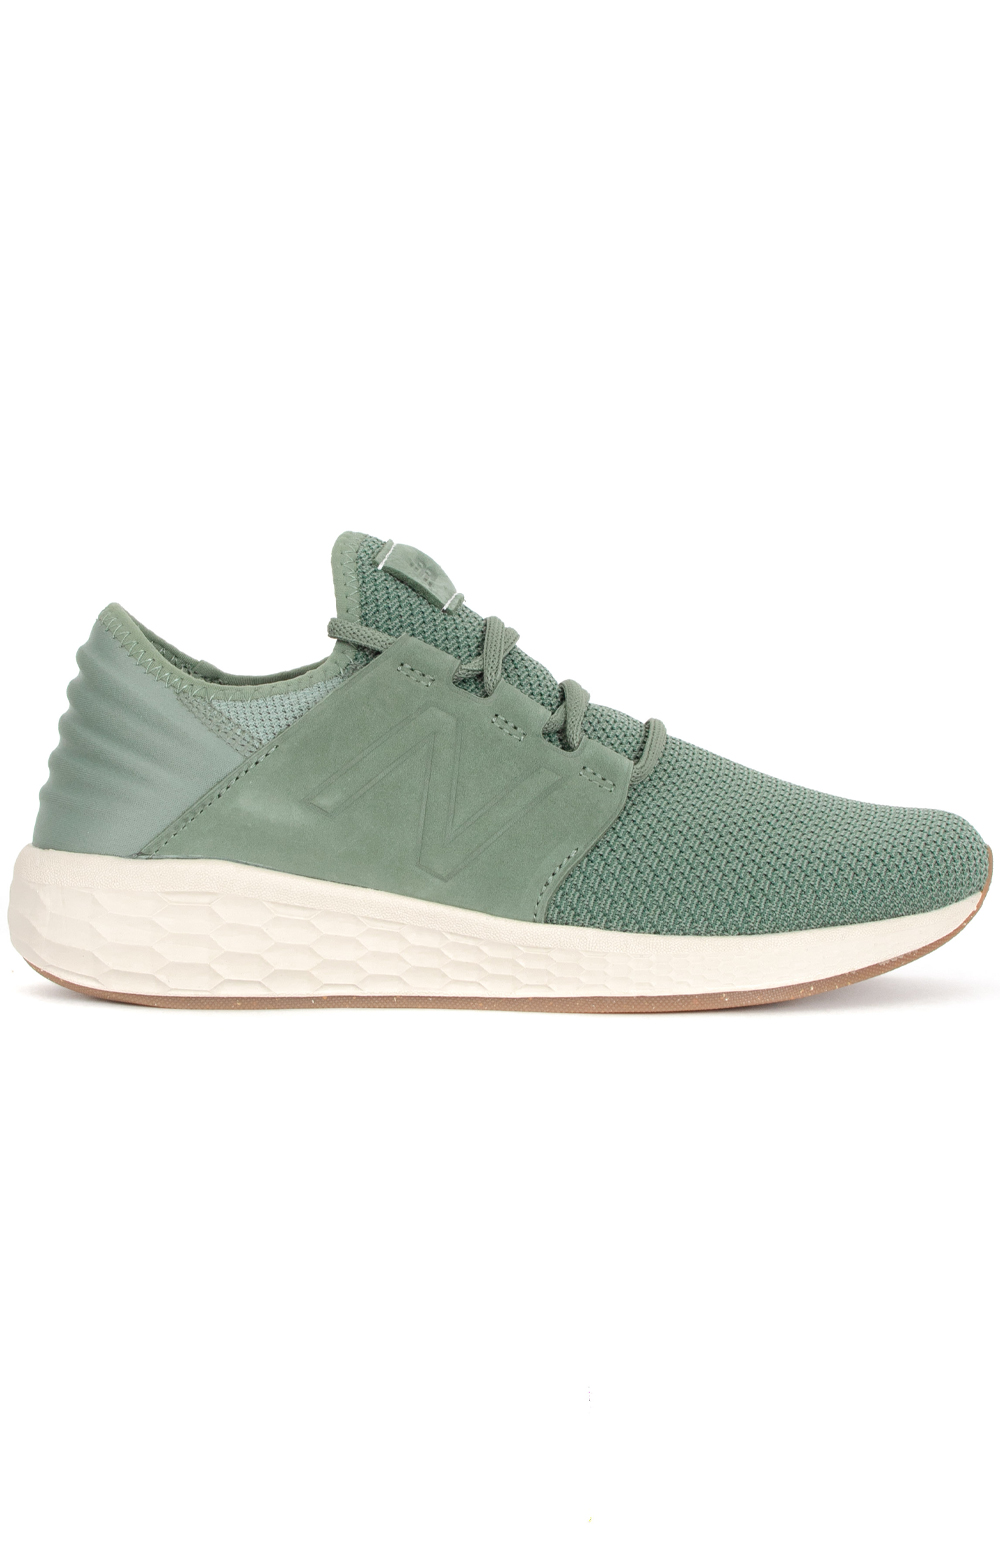 (MCRUZV2) Fresh Foam Cruz V2 Nubuck Shoe - Green